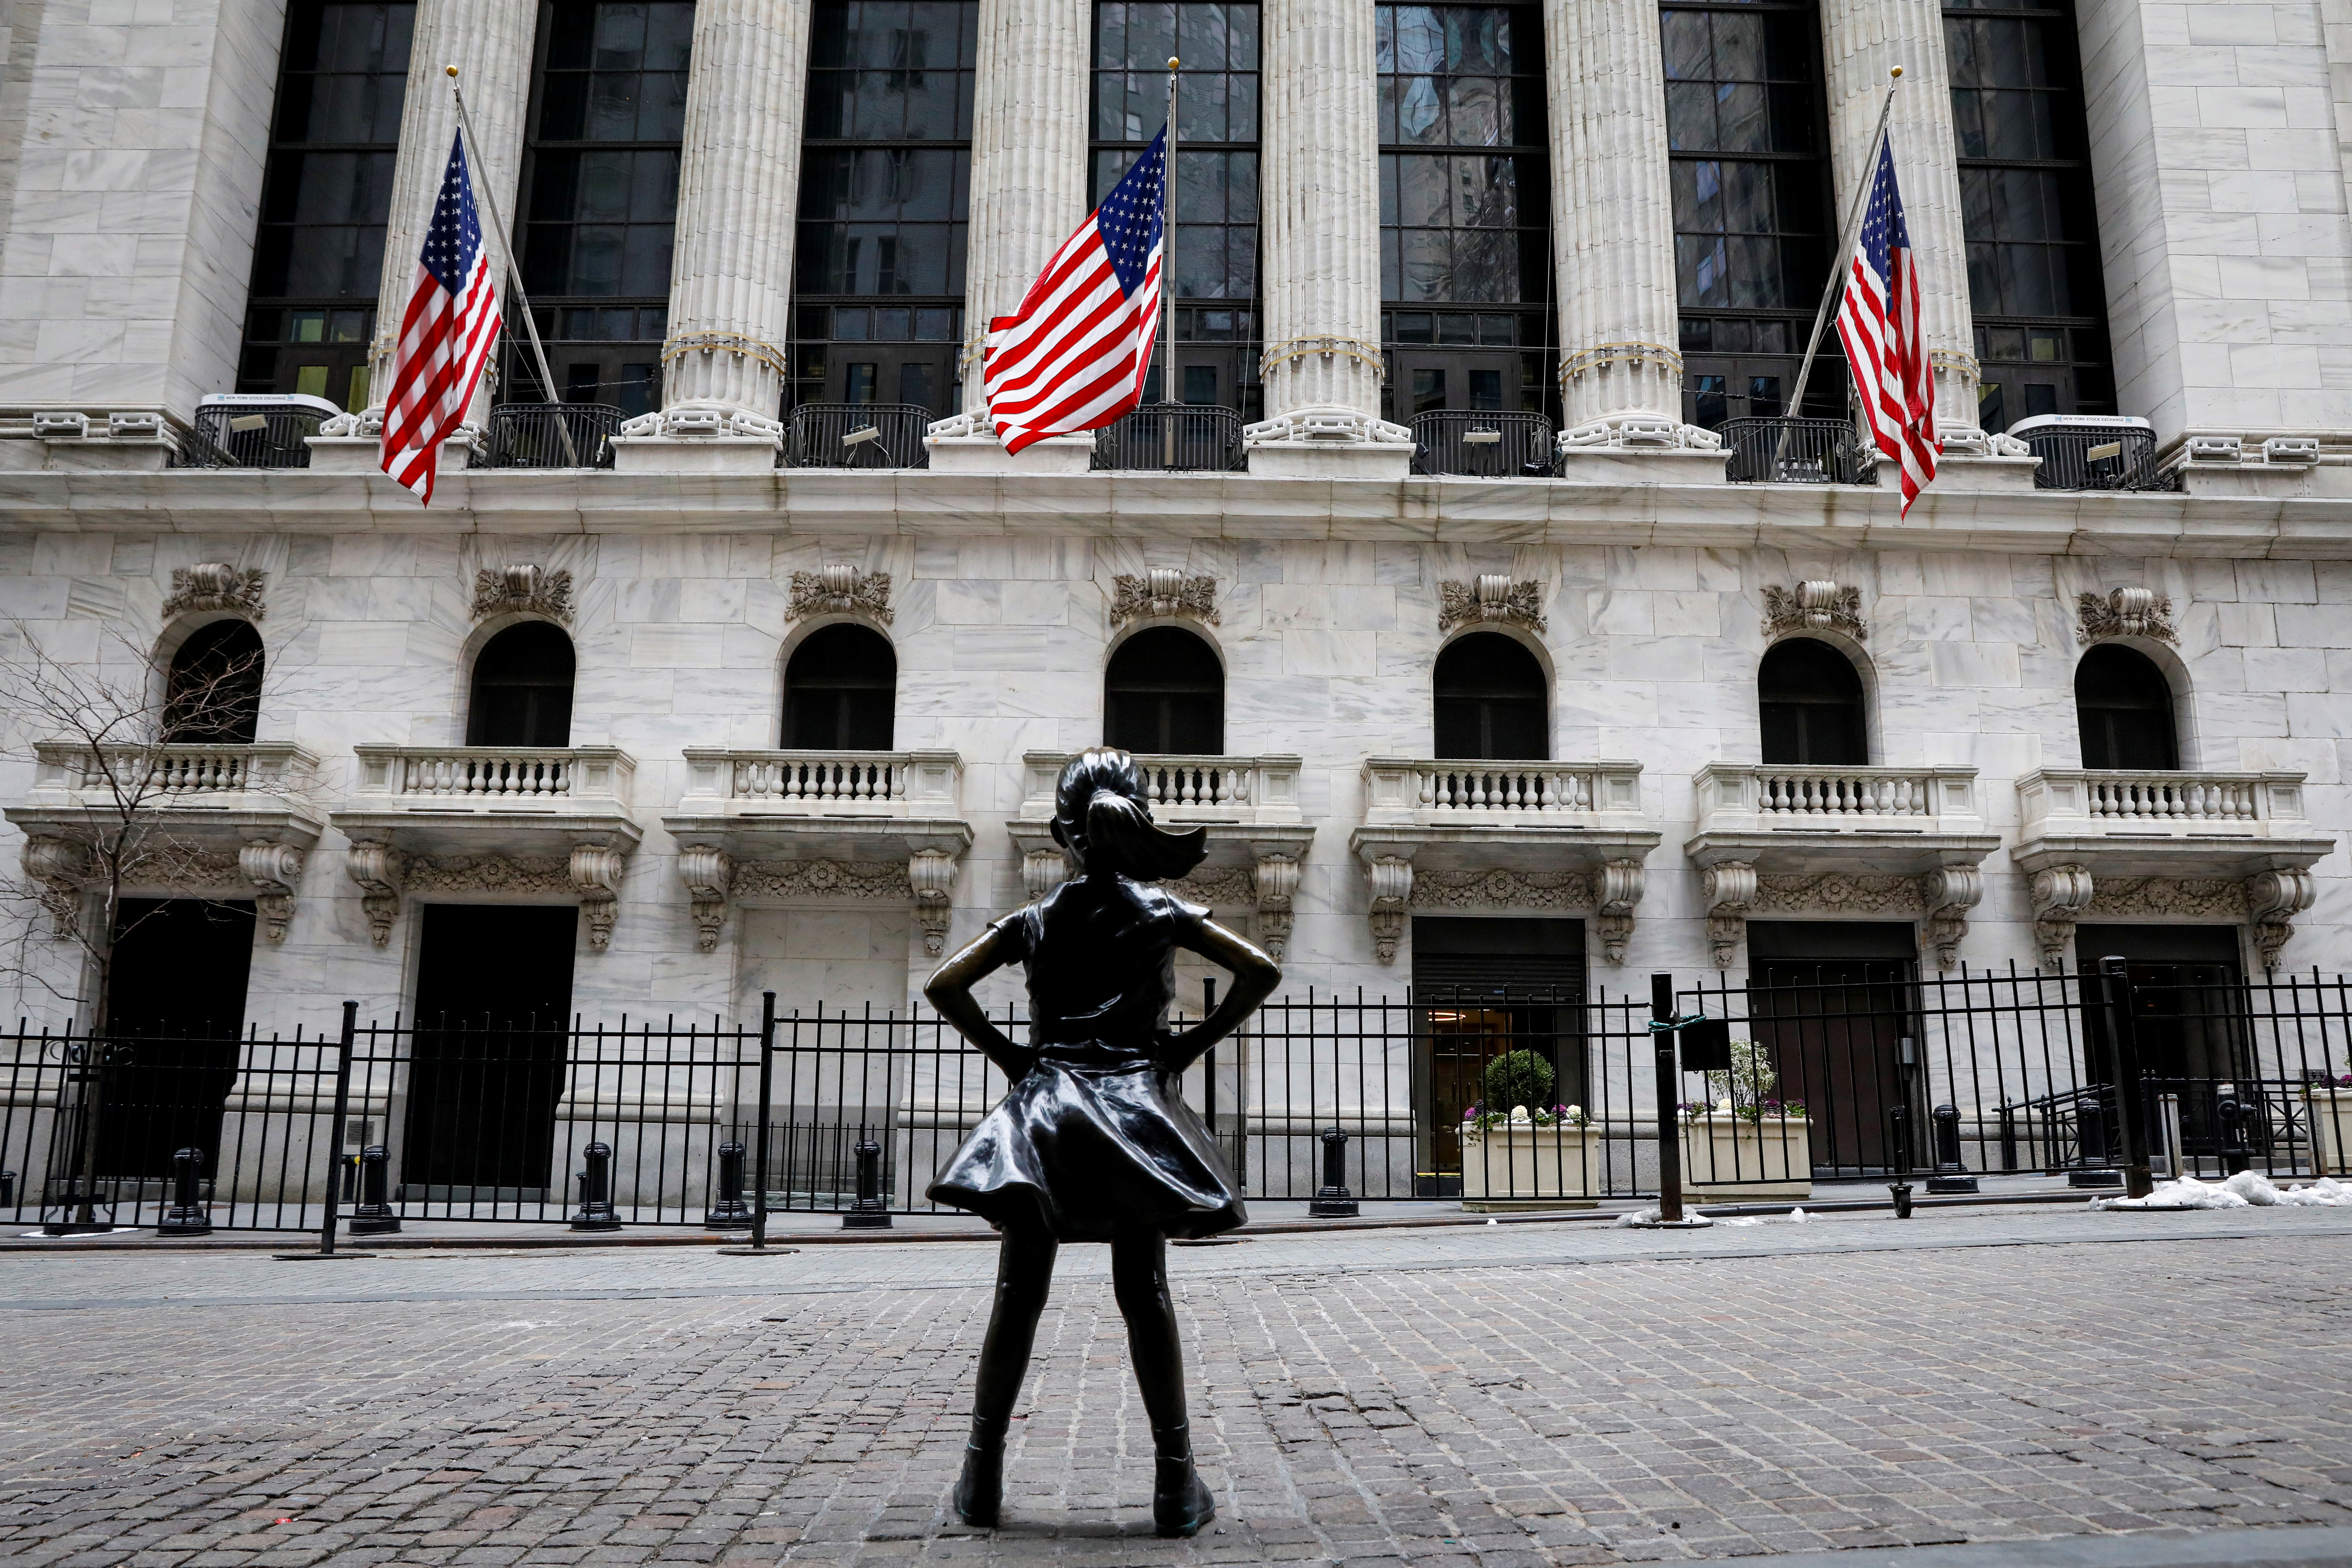 The Fearless Girl statue is seen outside the New York Stock Exchange (NYSE) in New York, U.S., February 12, 2021. REUTERS/Brendan McDermid